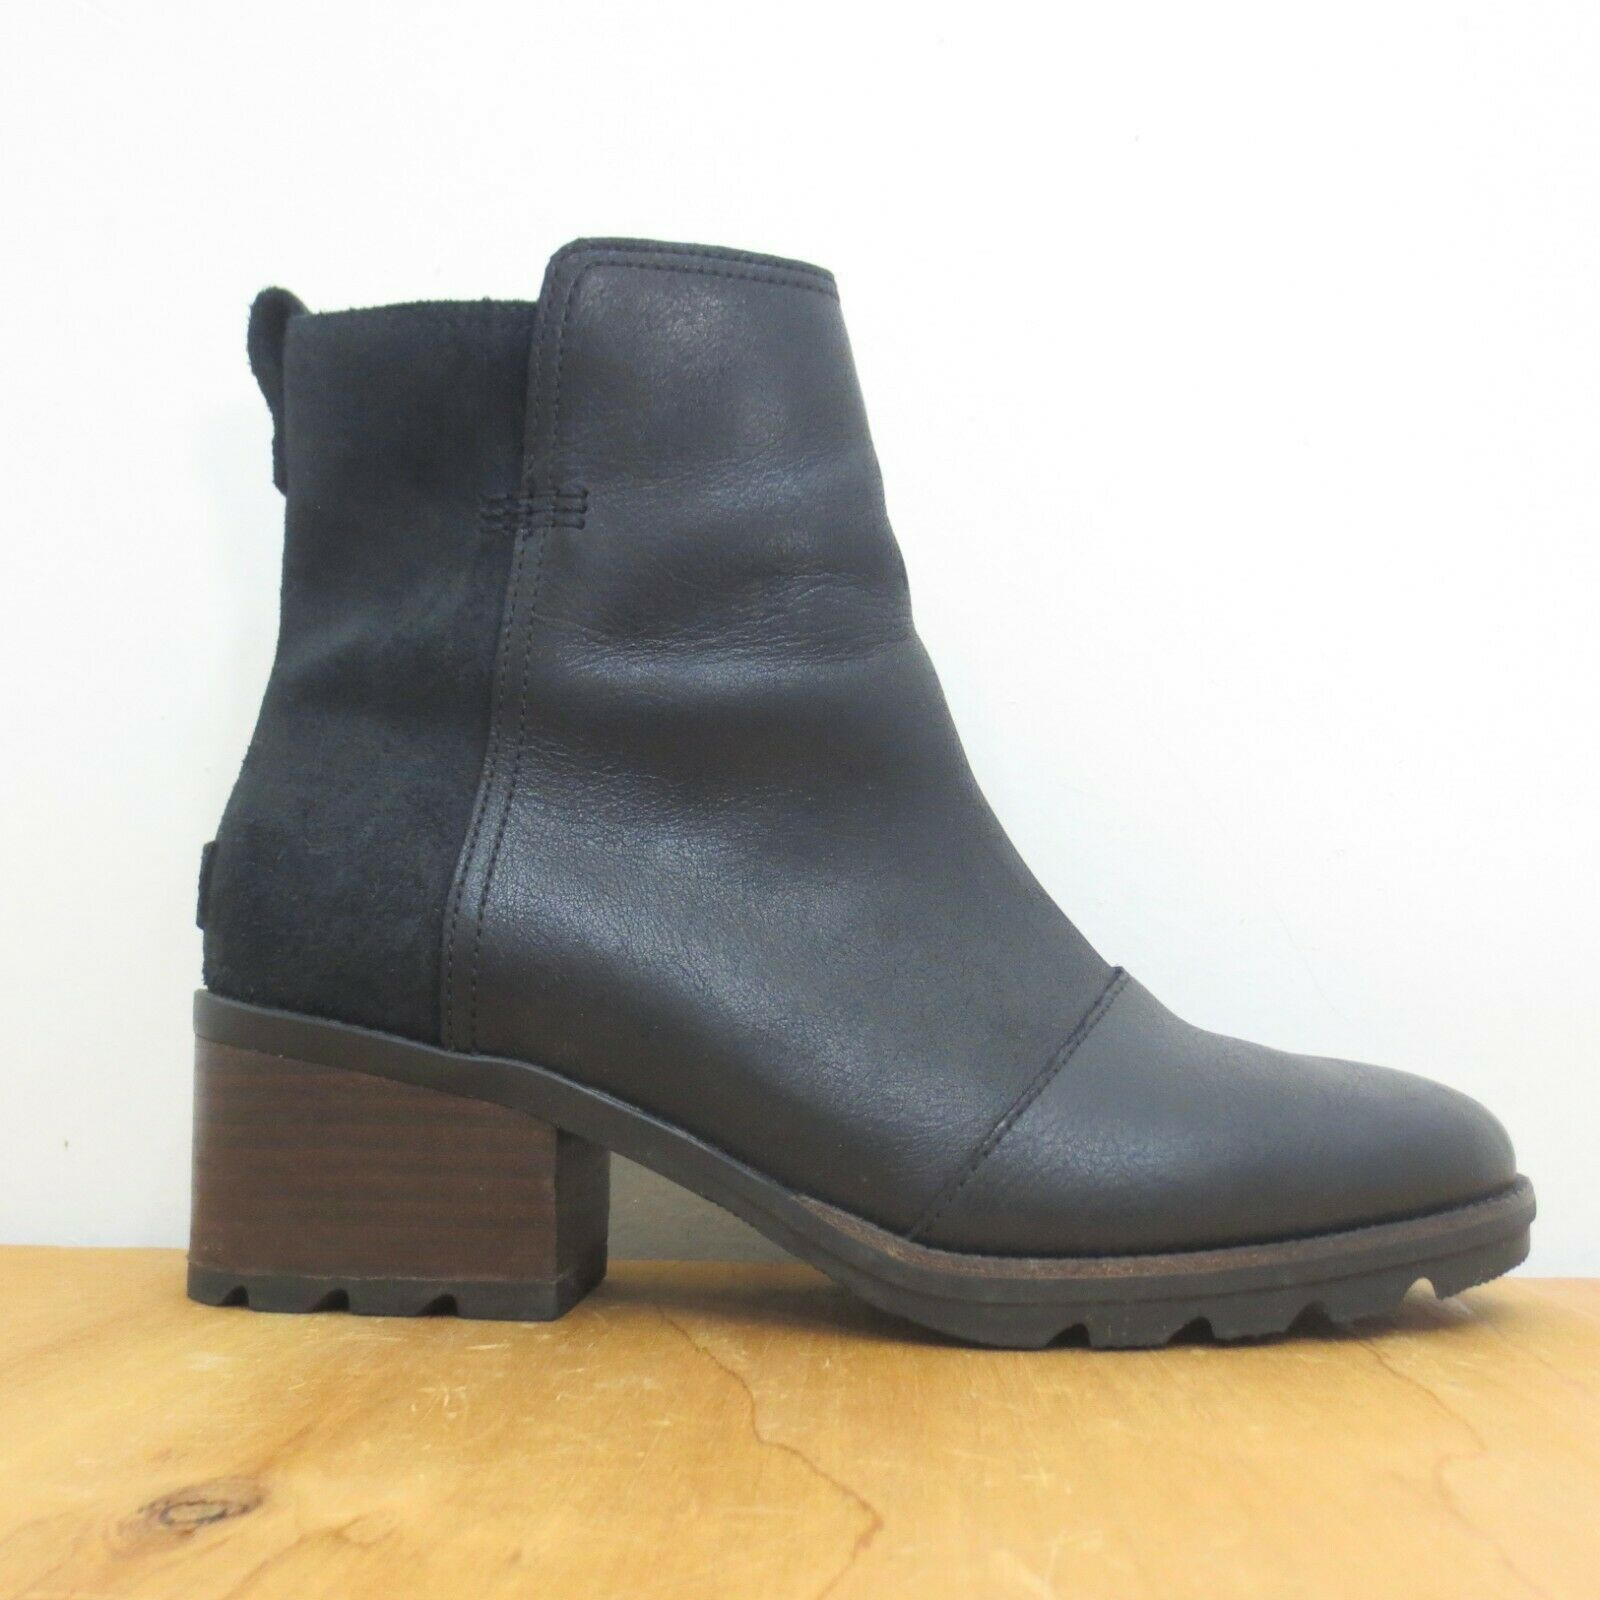 Primary image for 8.5 - Sorel Black Cate Leather & Suede Waterproof Heeled Ankle boots 1230KZ